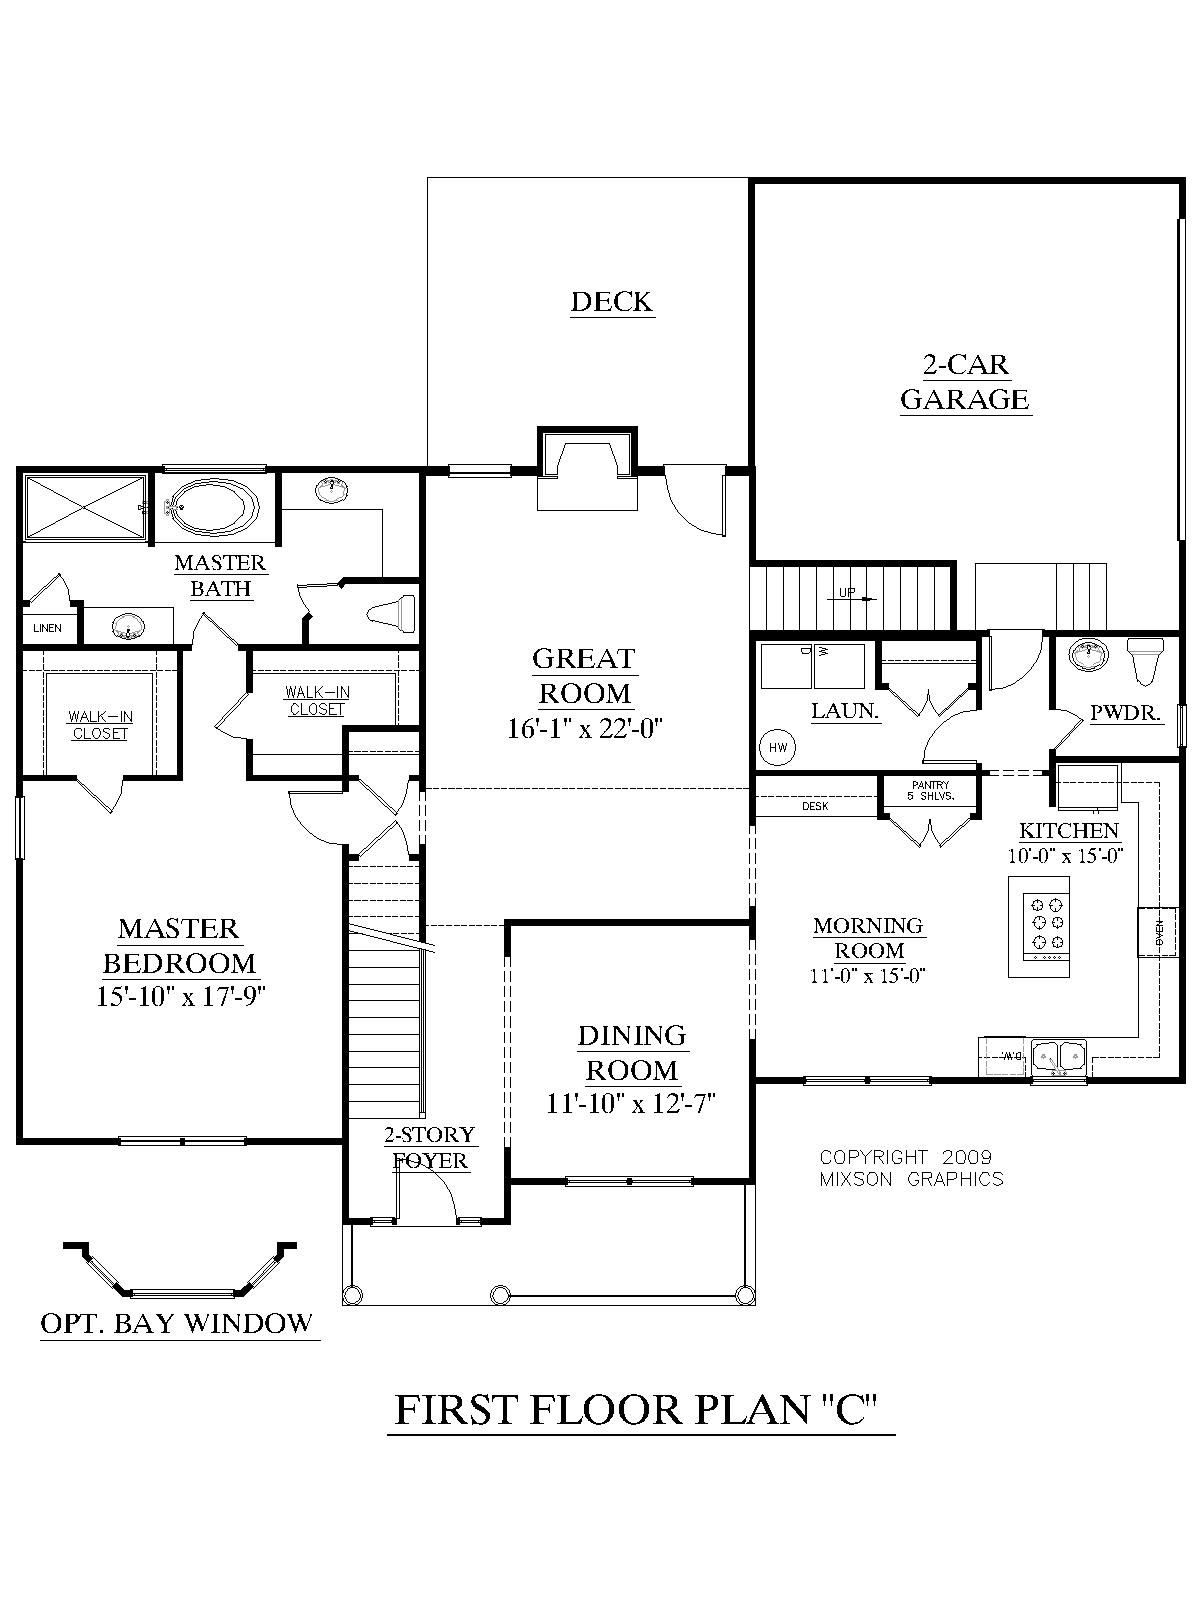 House plan 2675 c longcreek c first floor traditional 2 for 3 bedroom floor plans with bonus room